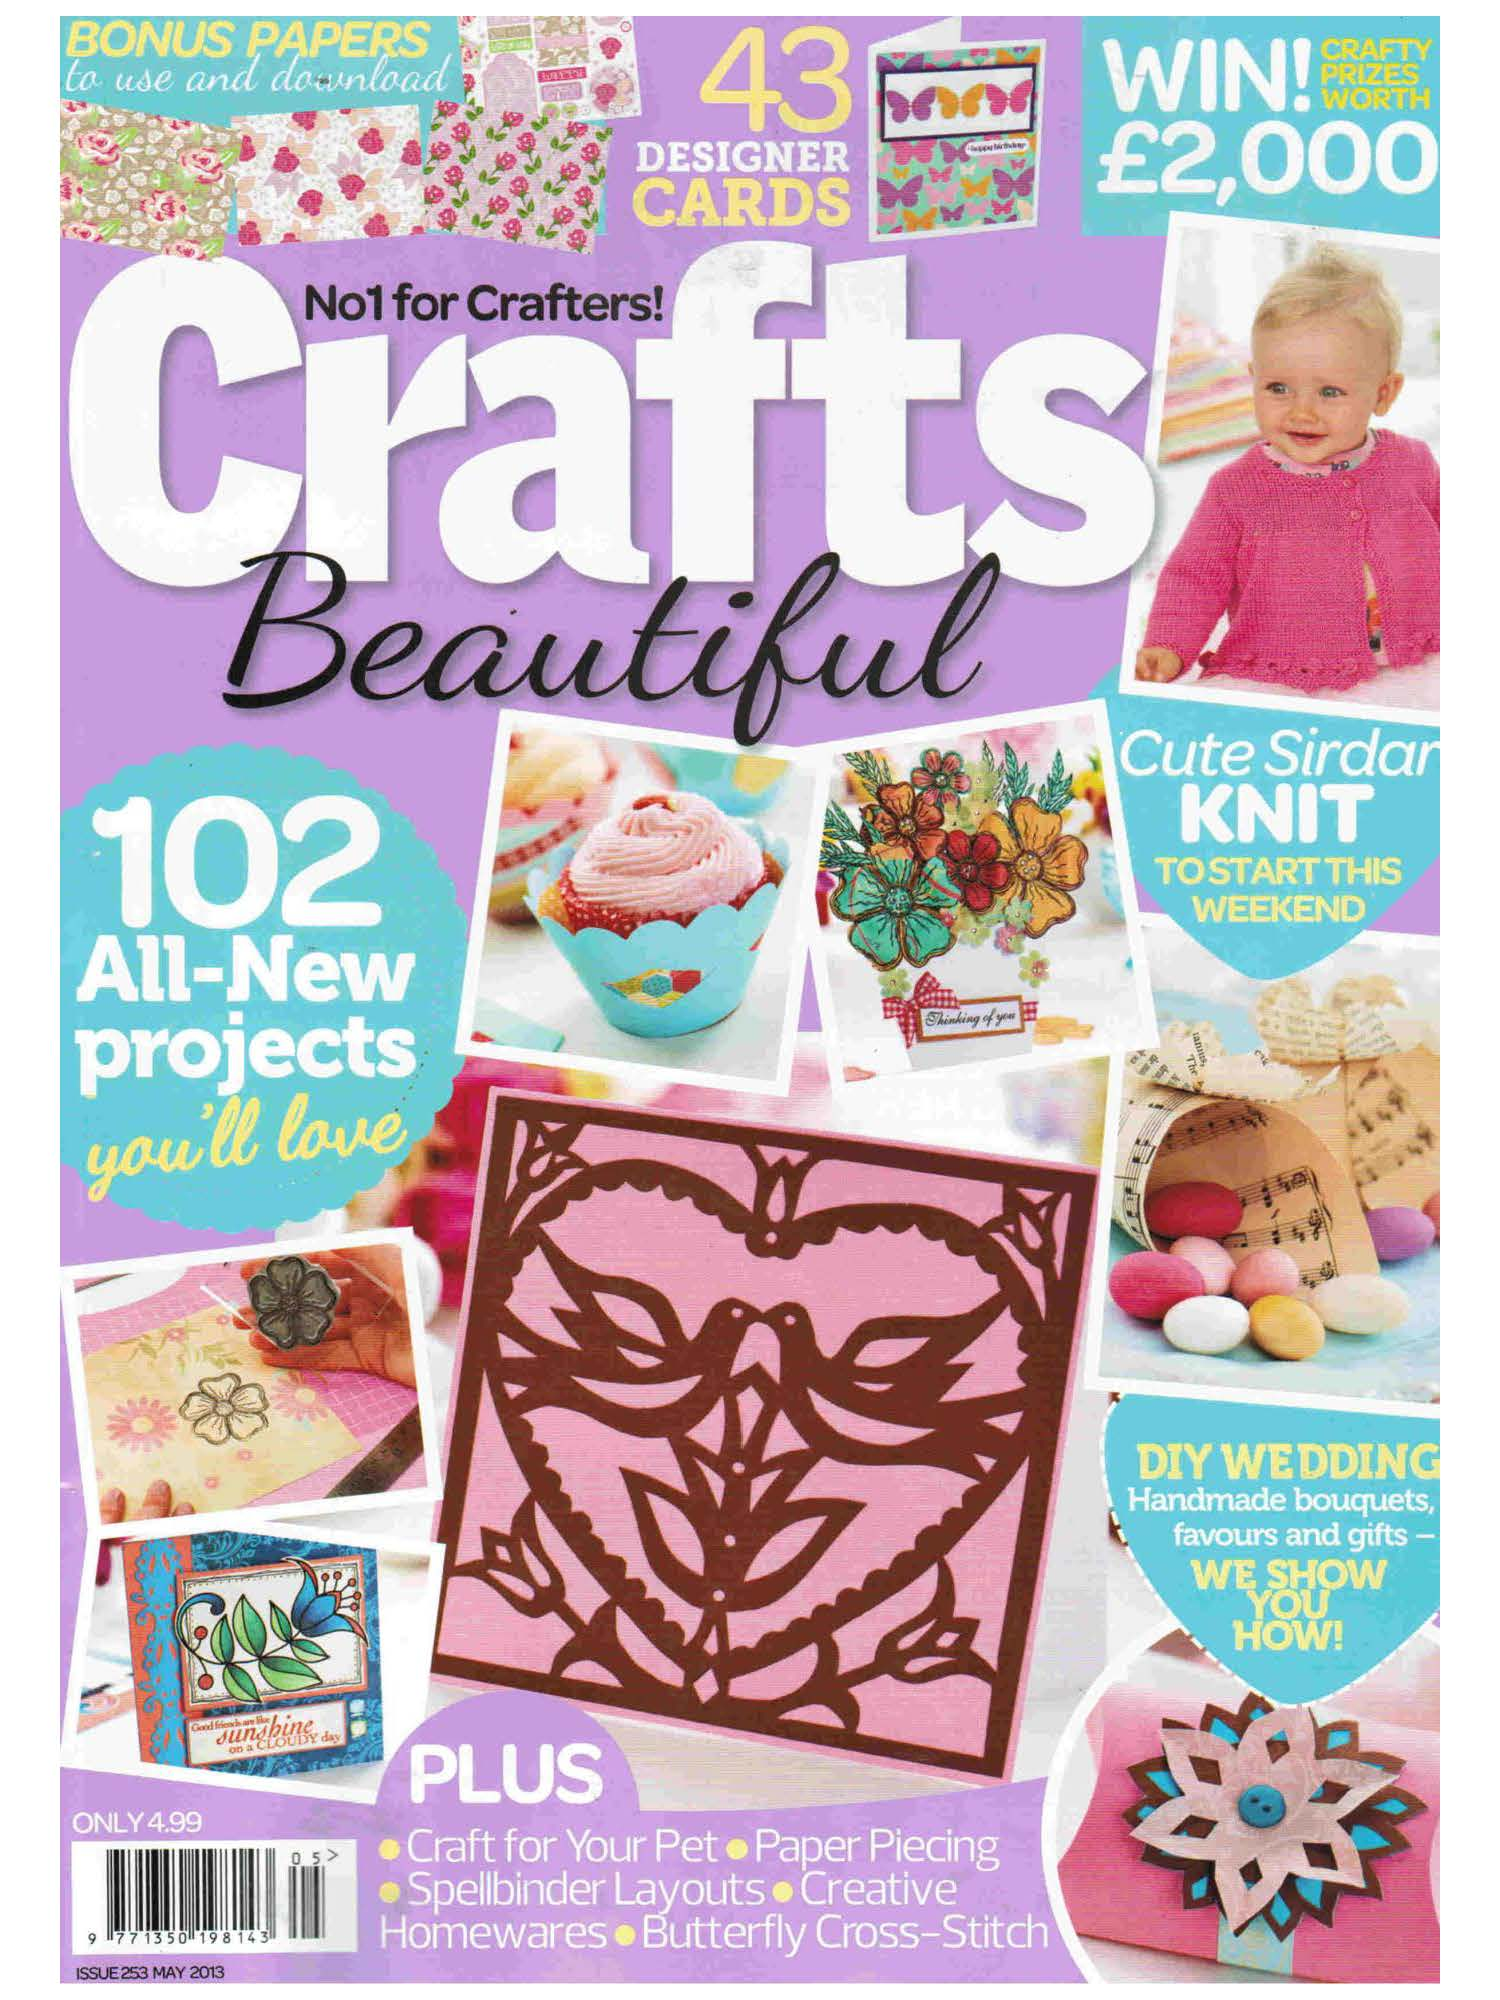 dog, dogs, style, magazine, press, editorial, crafts beautiful, crafts, purple